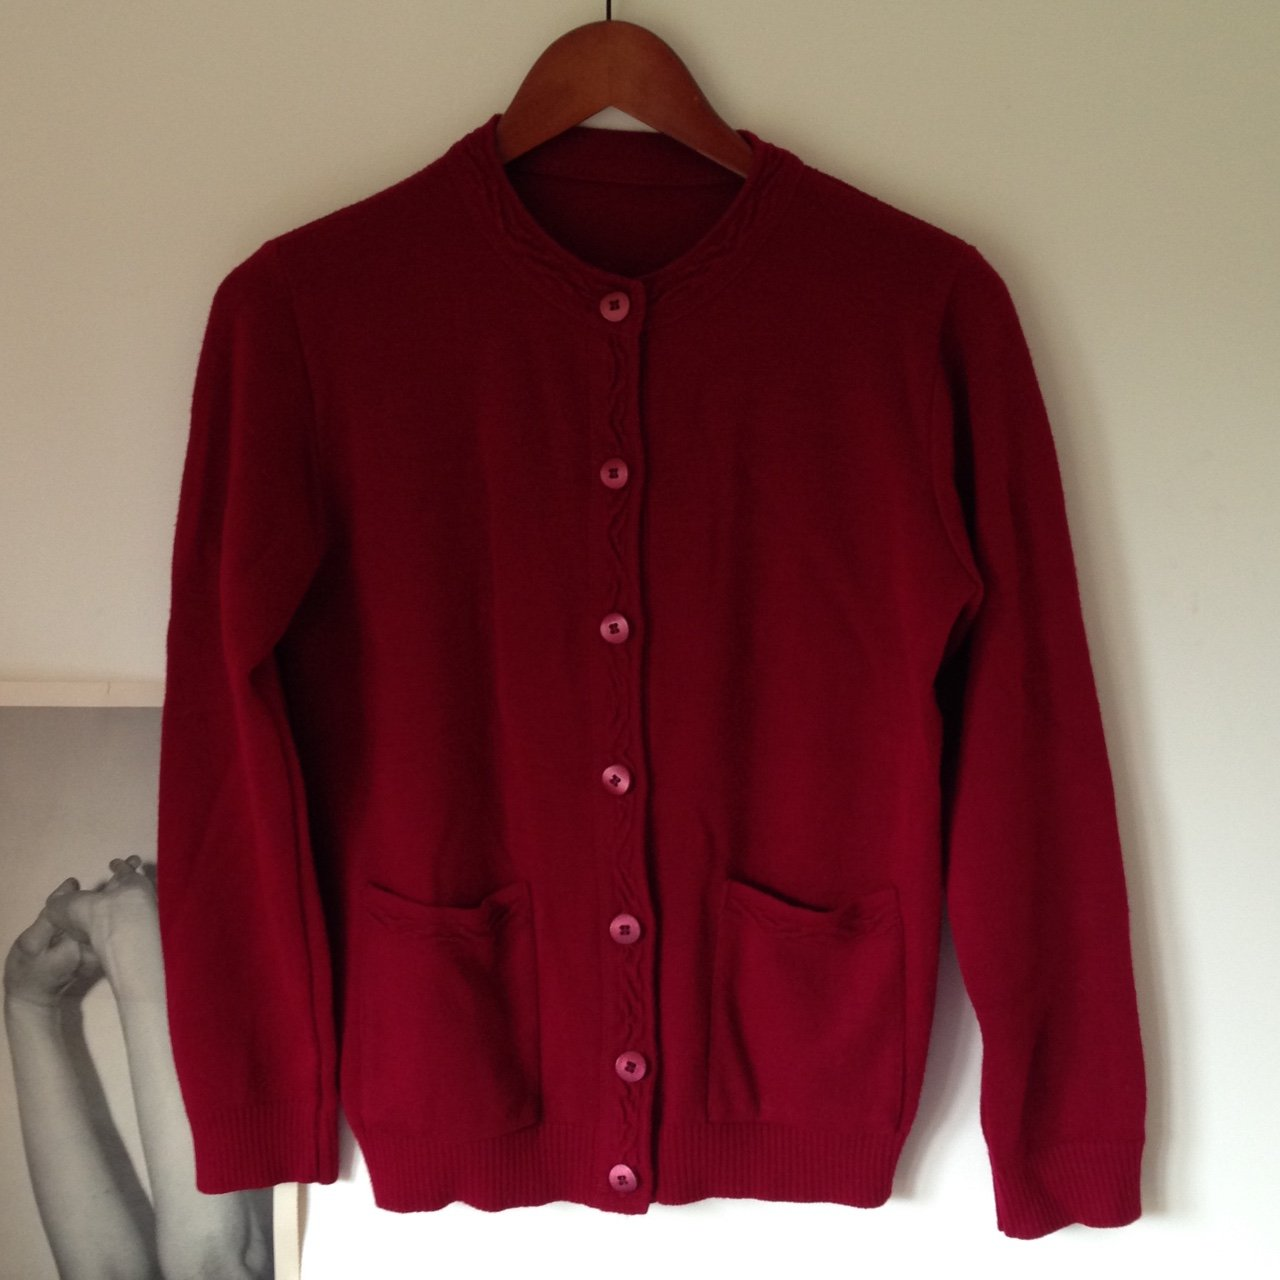 cc92fceec0 Cute red knit cardigan with pockets. Excellent condition. - Depop